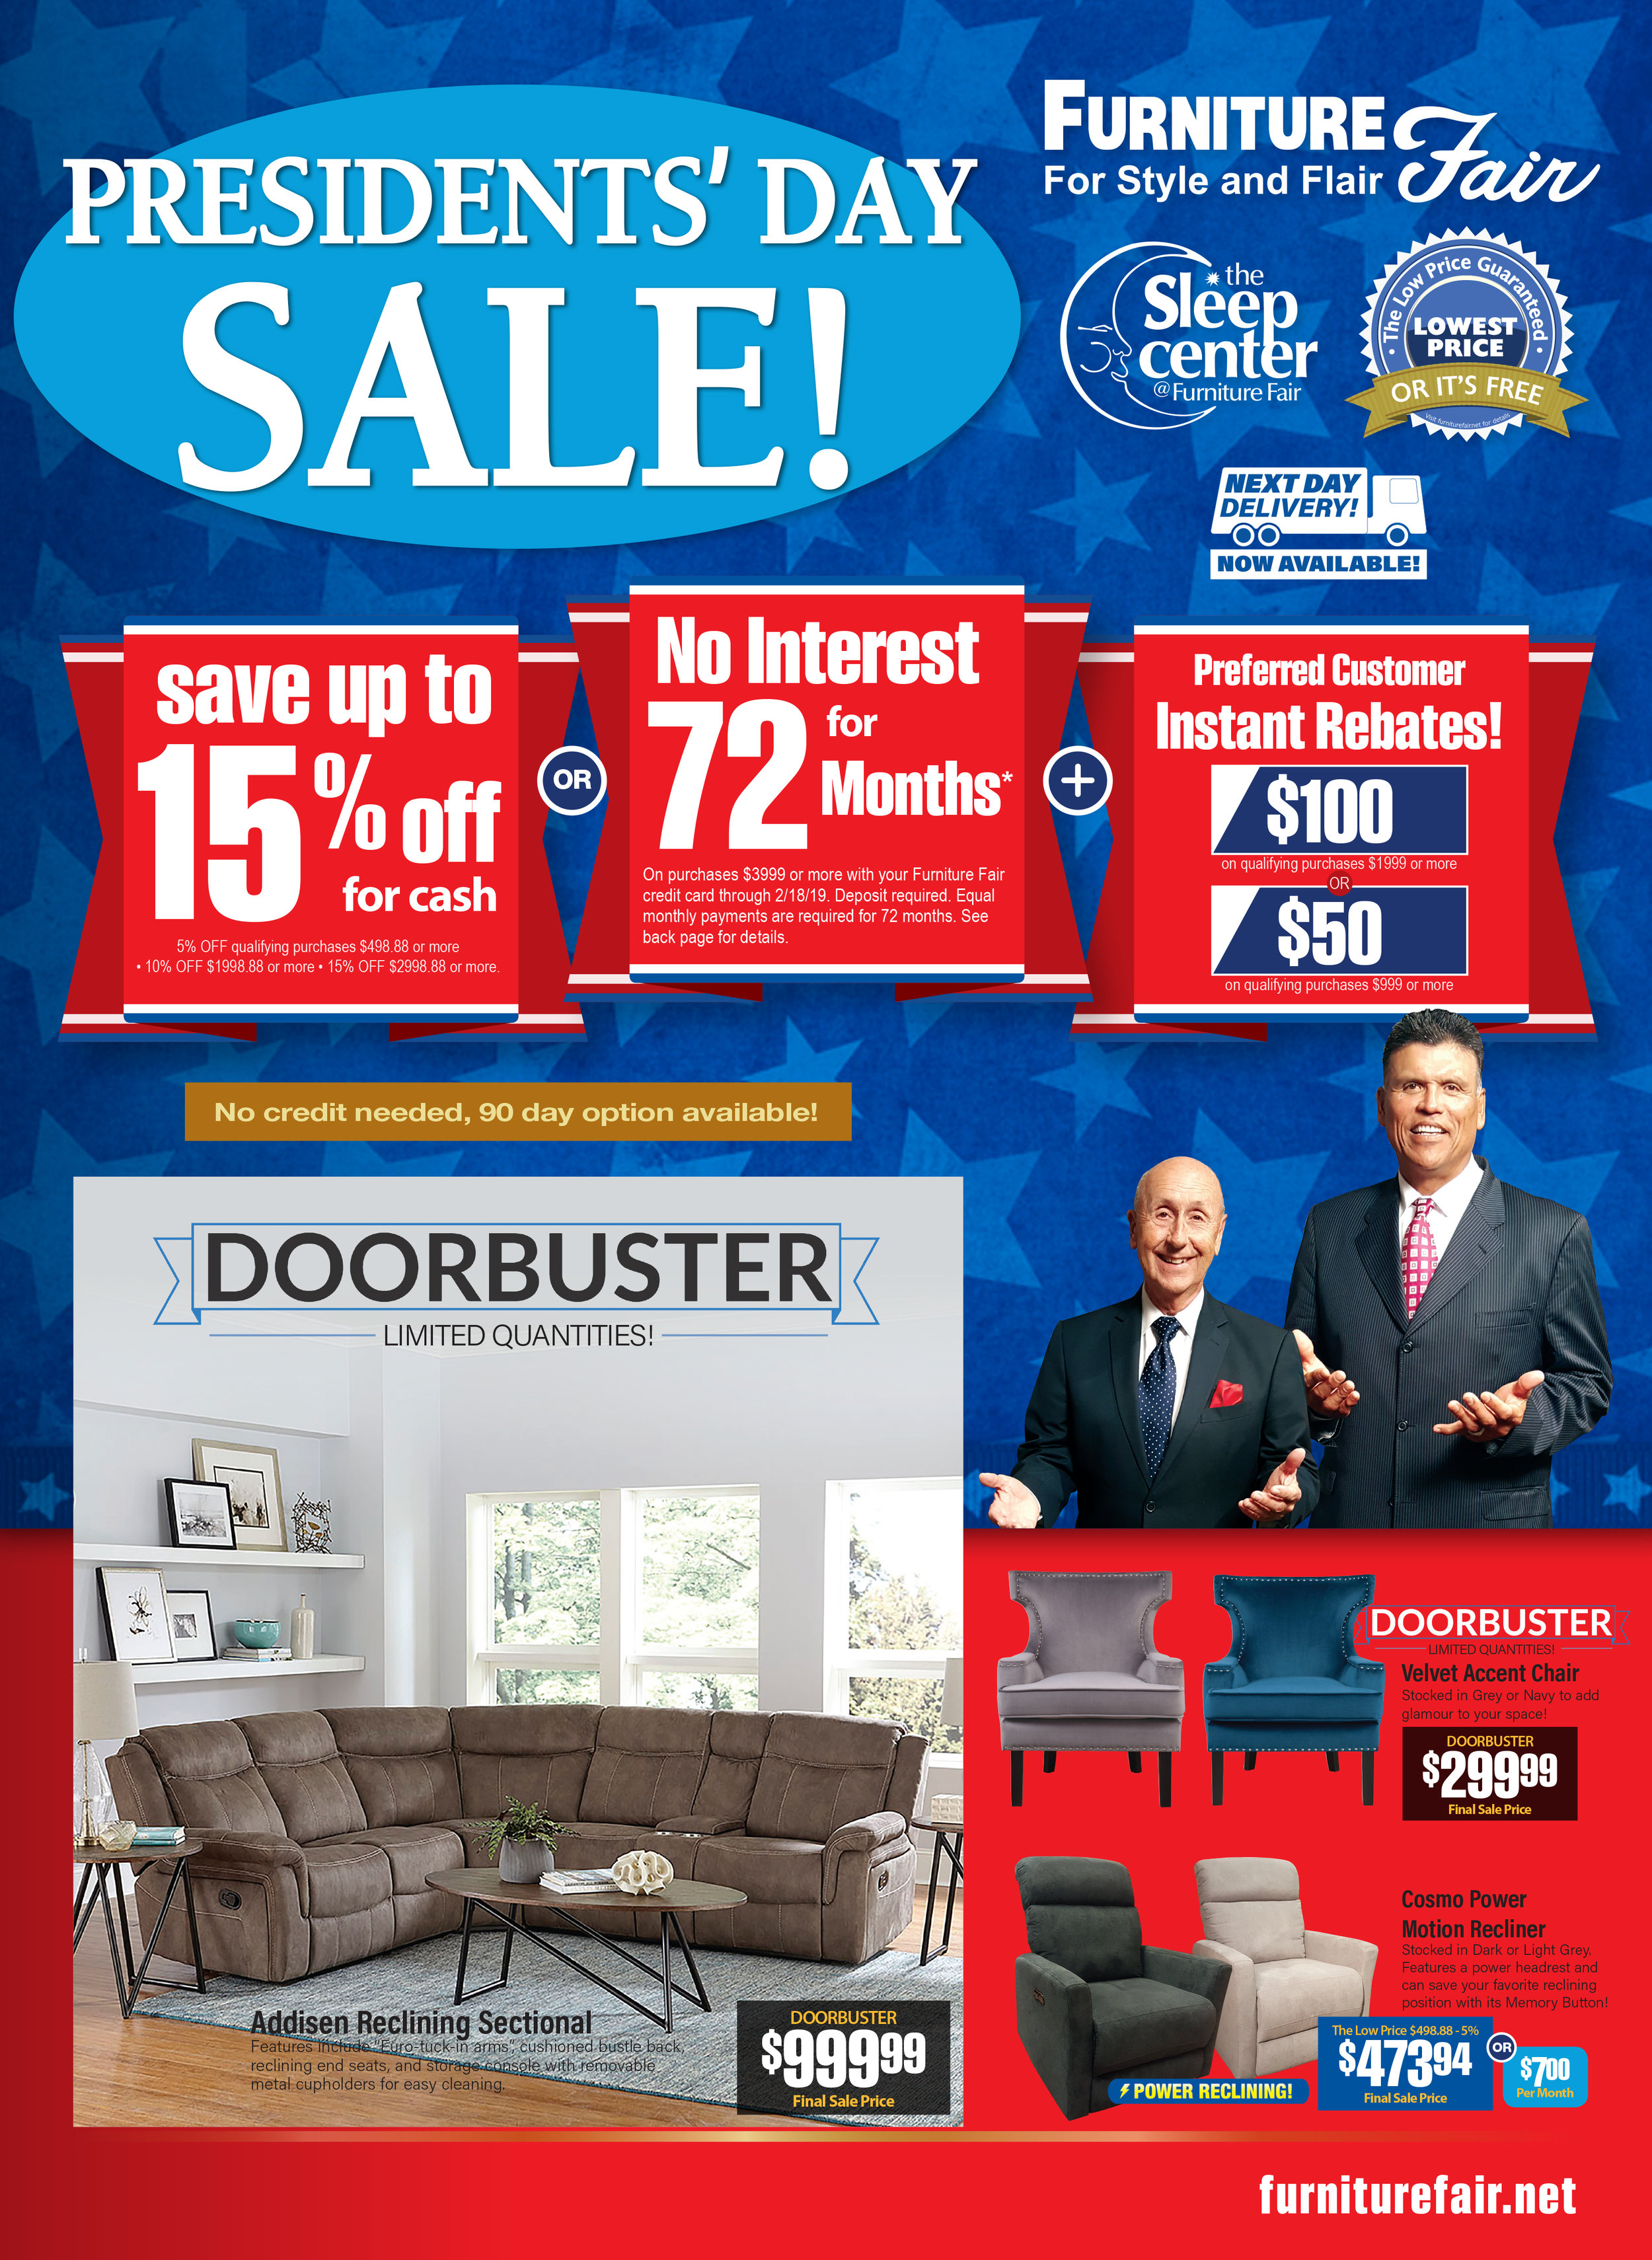 #3_19-2112 FF_Presidents Day Sale Mailer.jpg